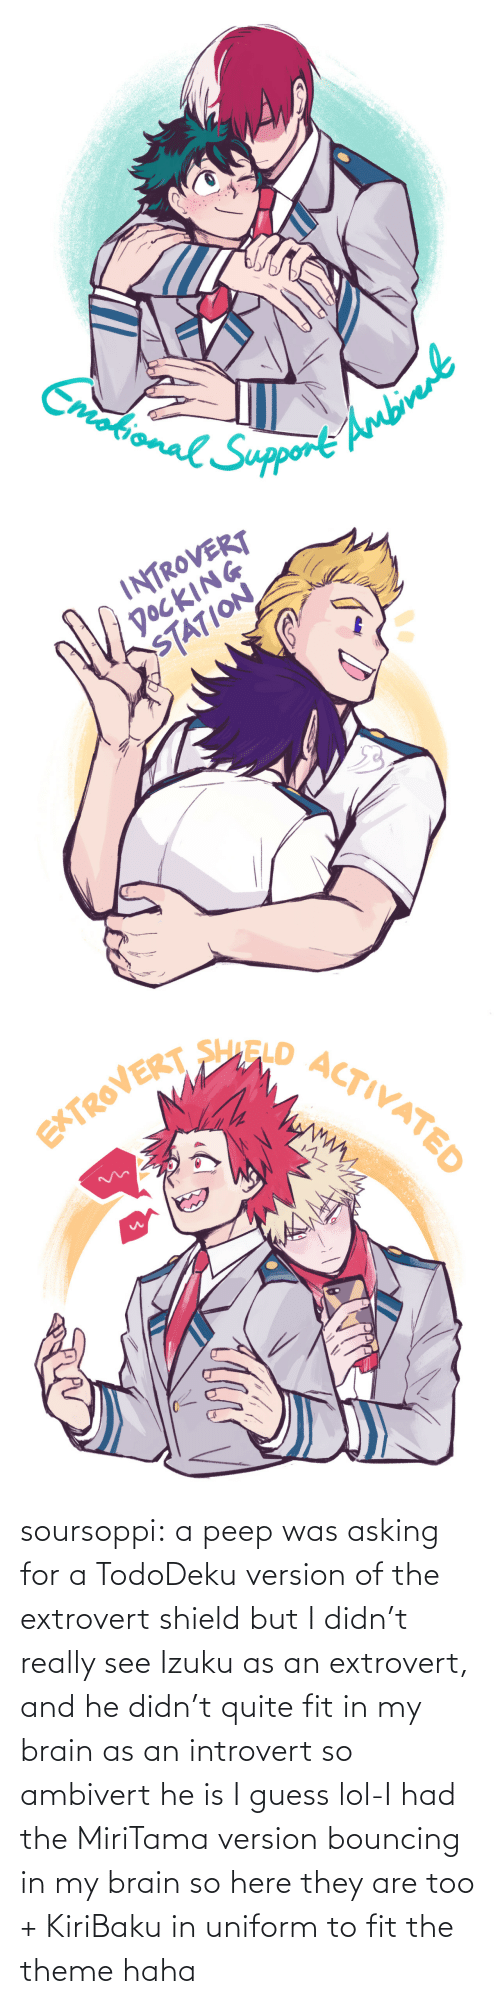 Brain: soursoppi:  a peep was asking for a TodoDeku version of the extrovert shield but I didn't really see Izuku as an extrovert, and he didn't quite fit in my brain as an introvert so ambivert he is I guess lol-I had the MiriTama version bouncing in my brain so here they are too + KiriBaku in uniform to fit the theme haha